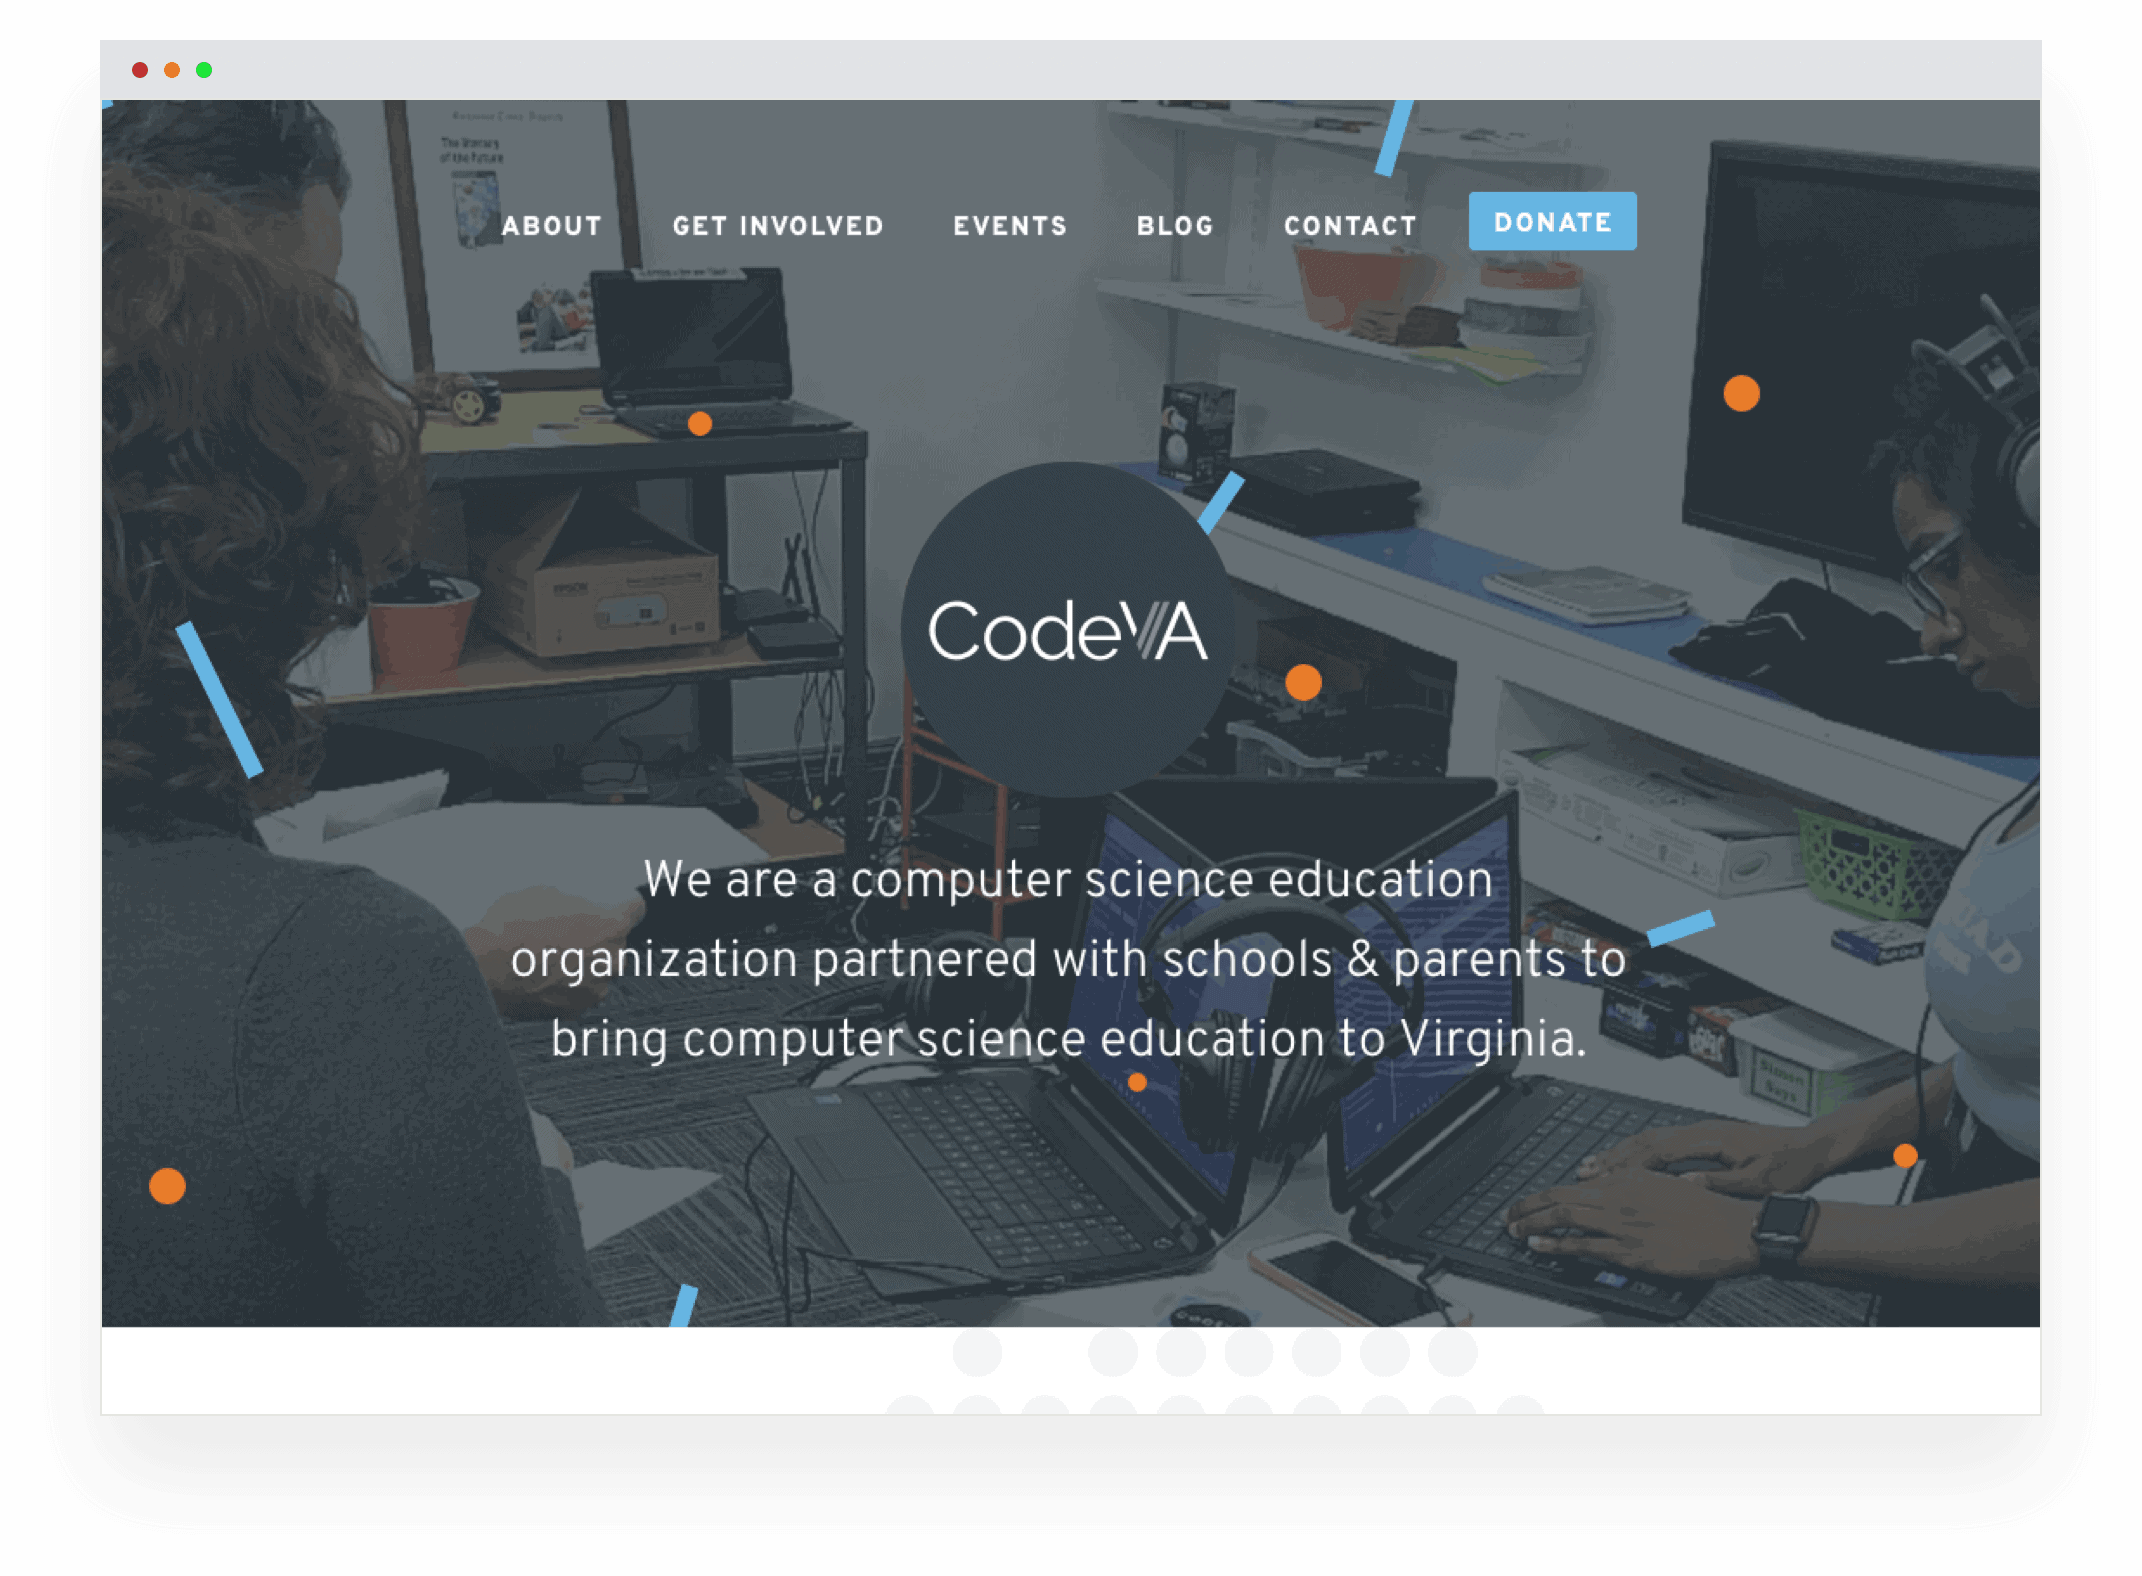 The new CodeVA website